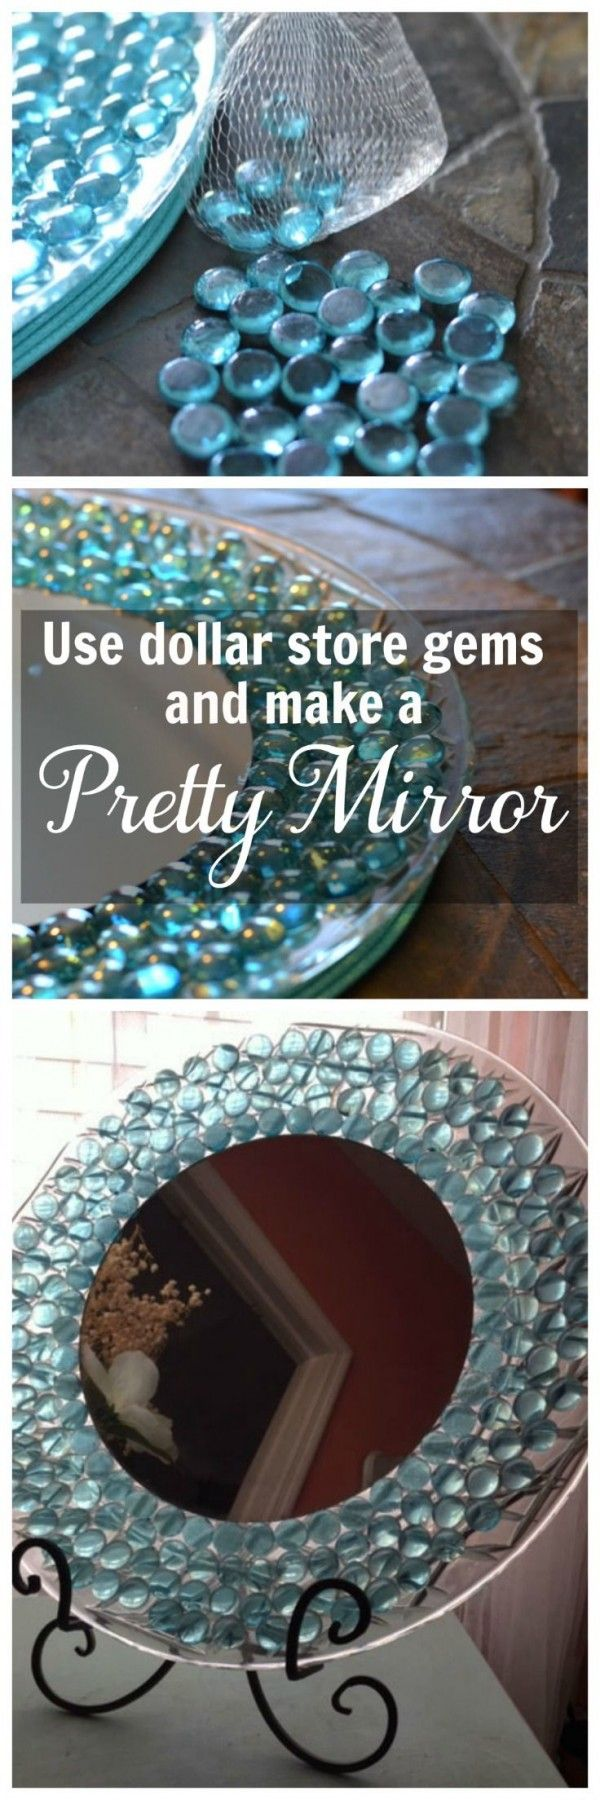 Check out how to make a DIY mirror frame with dollar store gems @istandarddesign